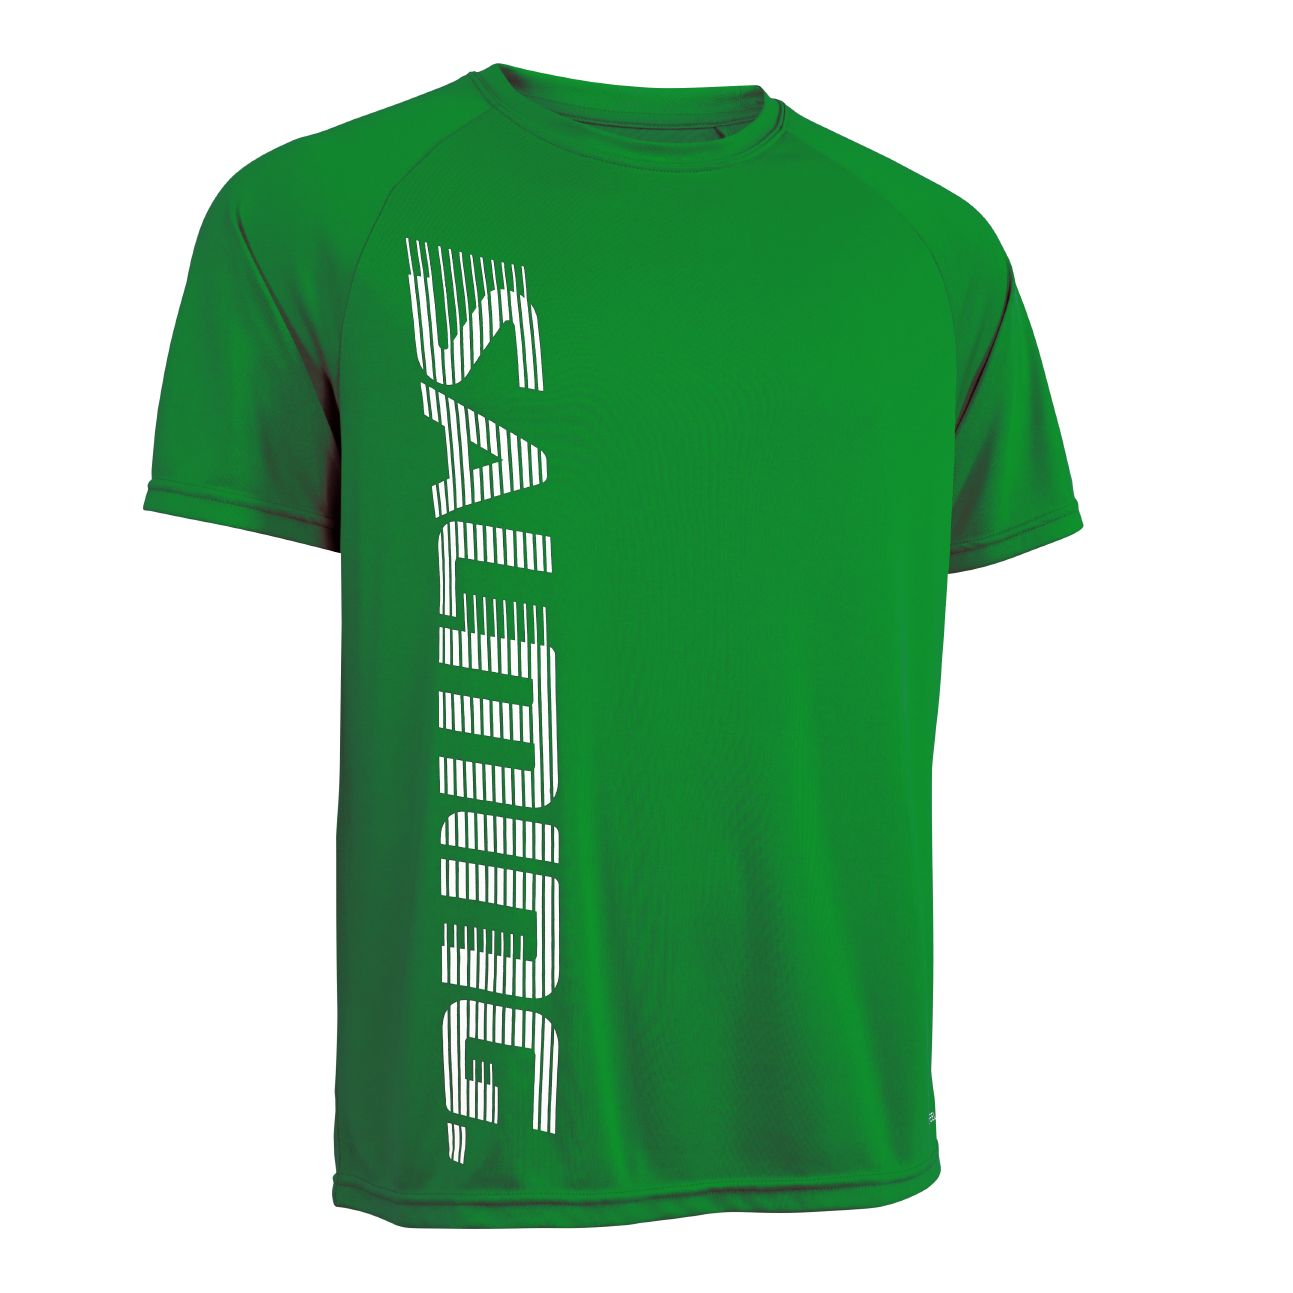 Salming Training Tee 2.0 Zelená, M